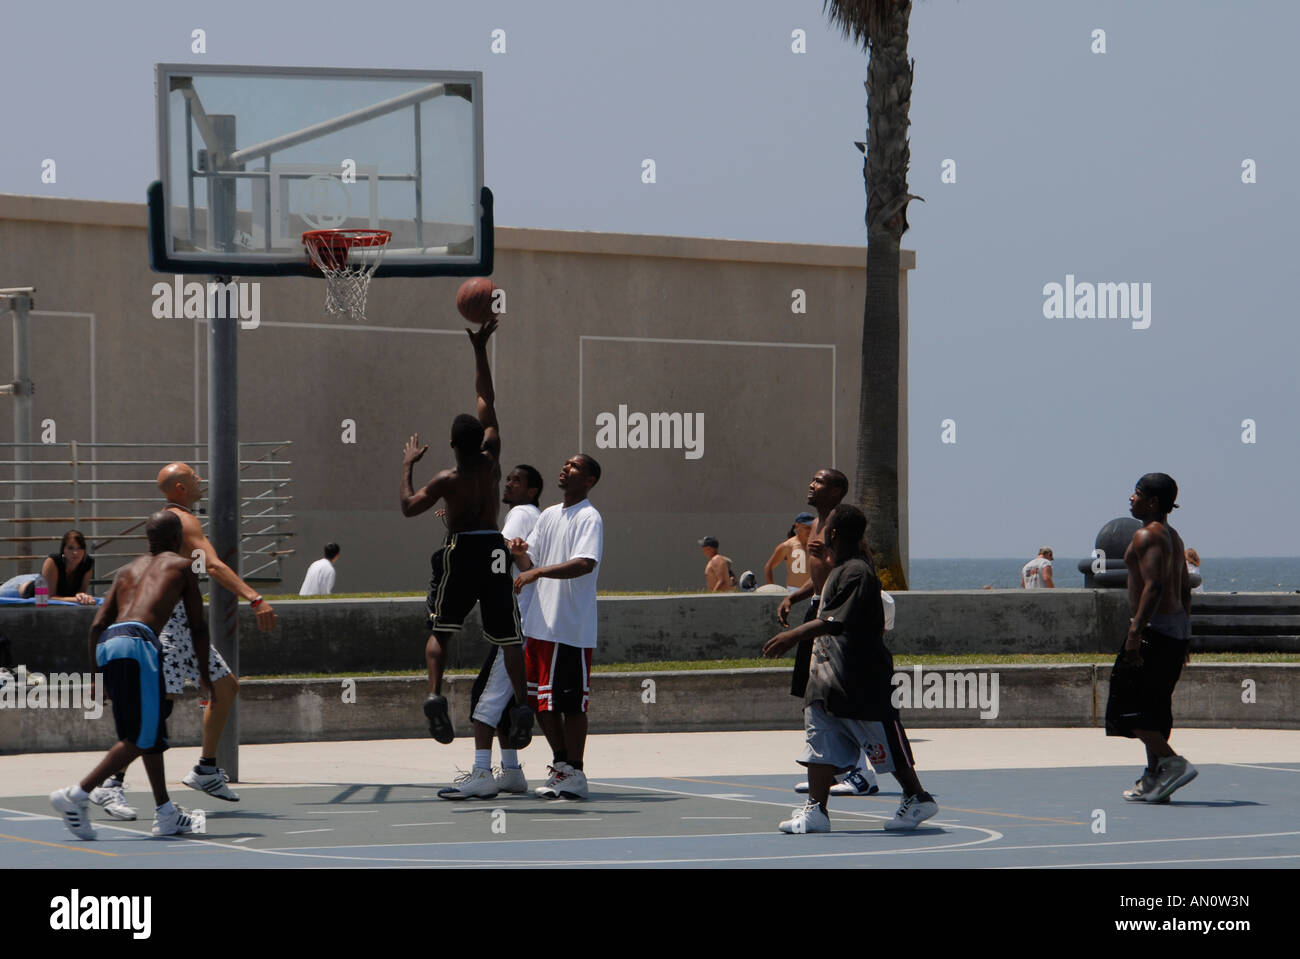 Local guys playing basketball at Venice Beach, California, USA. - Stock Image